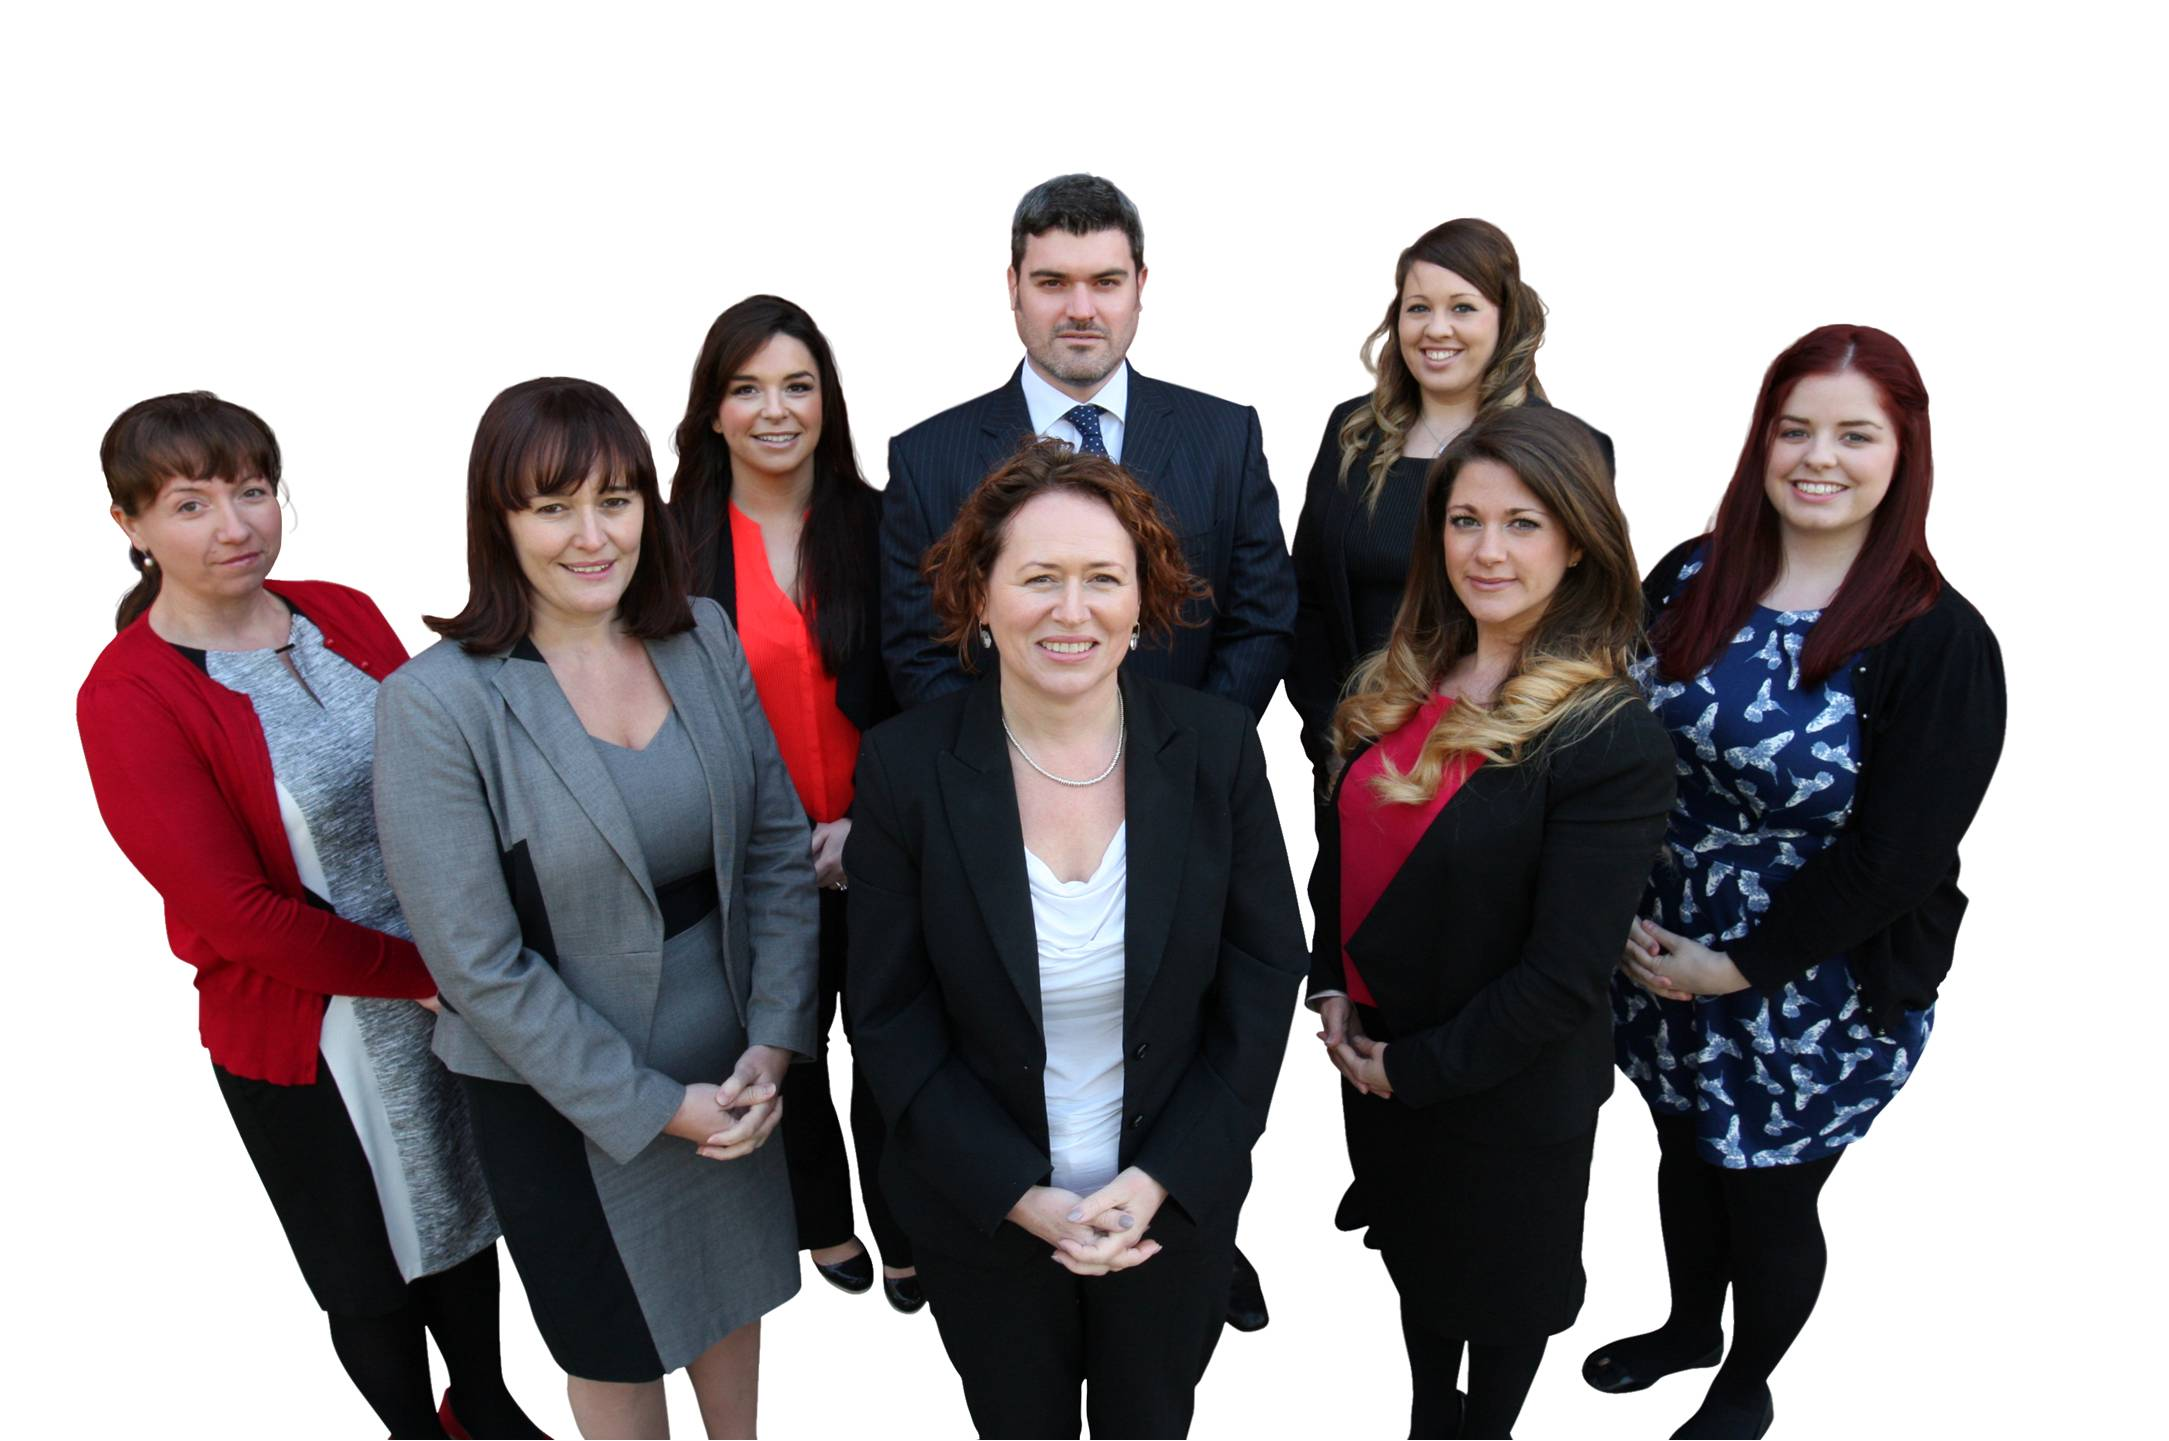 Our Septic Arthritis expert team. We deal with medical negligence claims arising from Septic Arthritis.